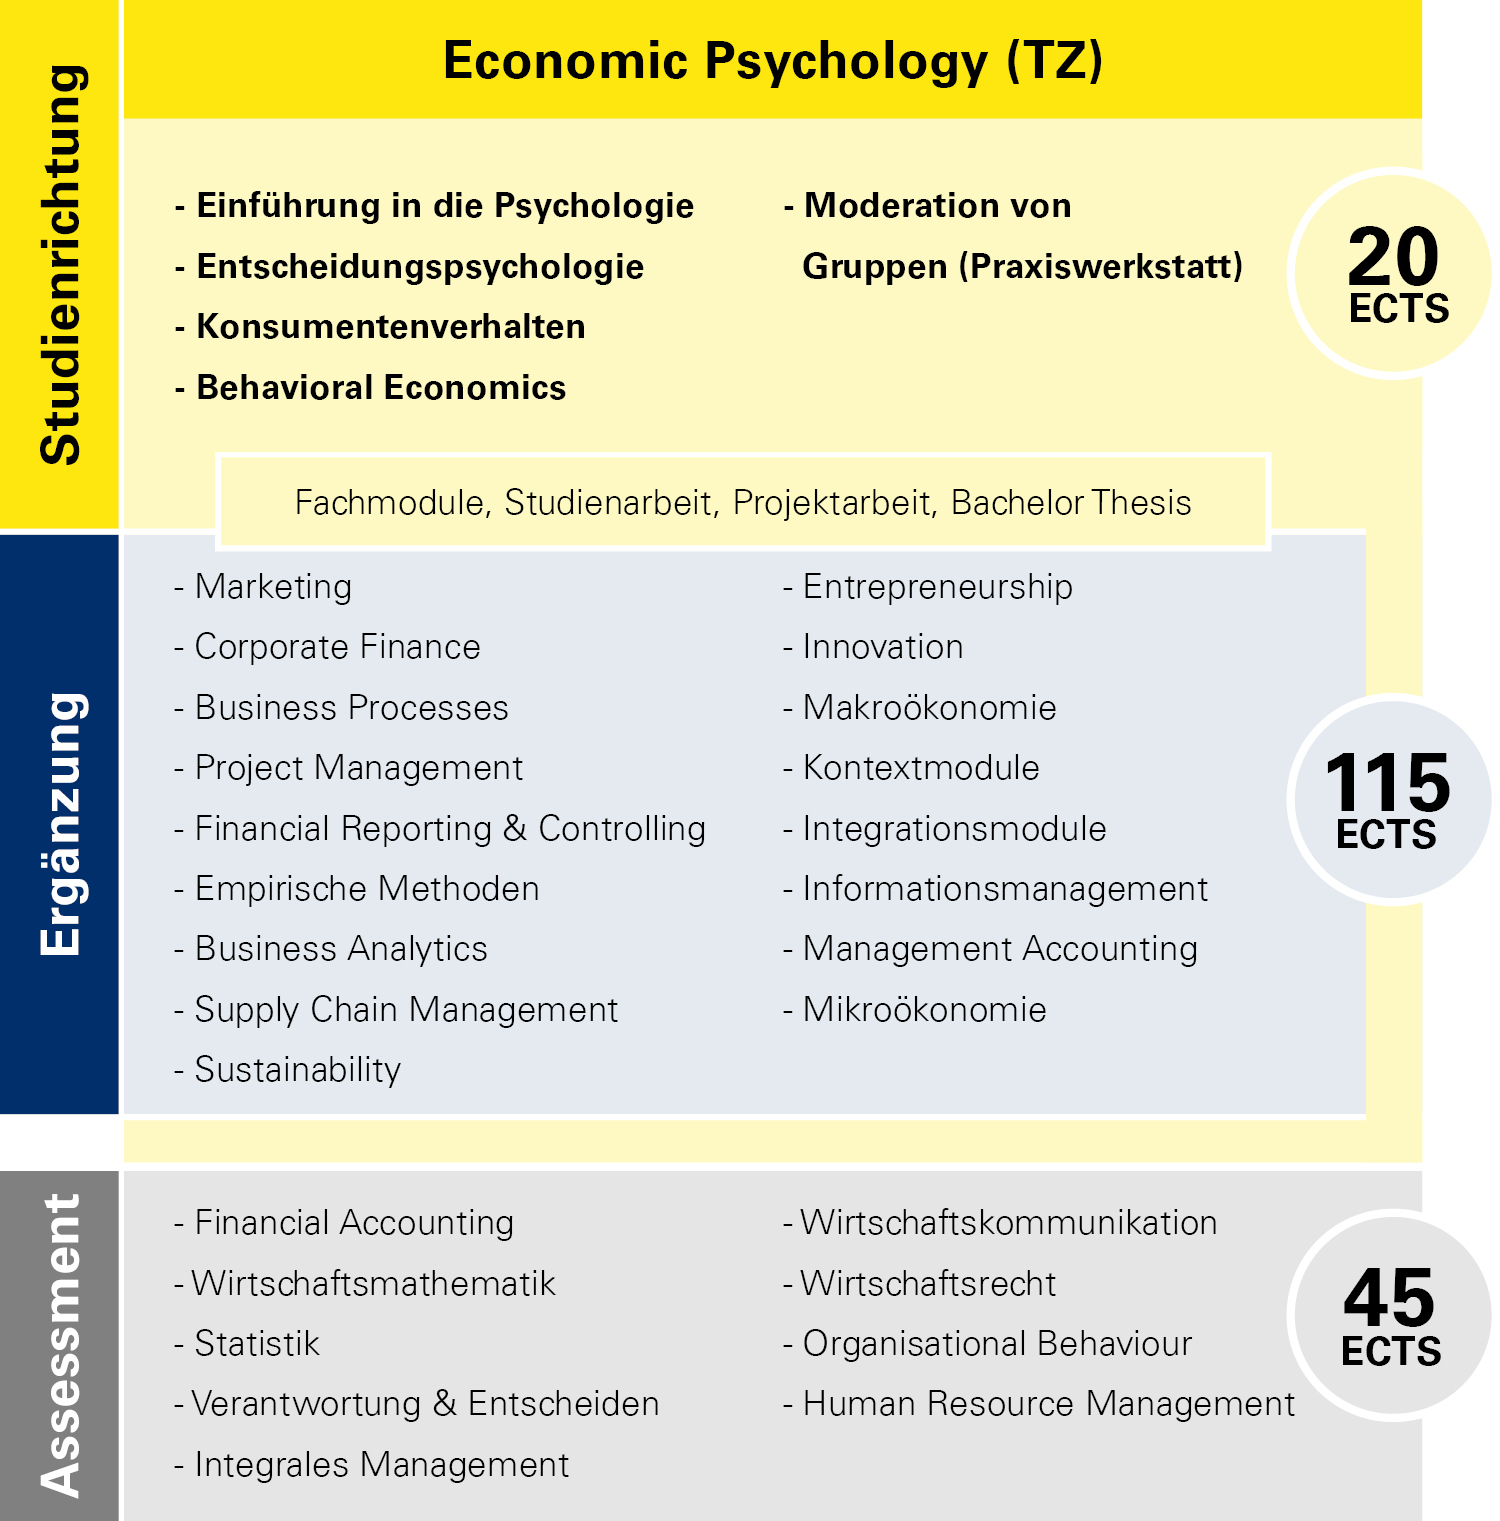 Modulübersicht Economic Psychology Teilzeit